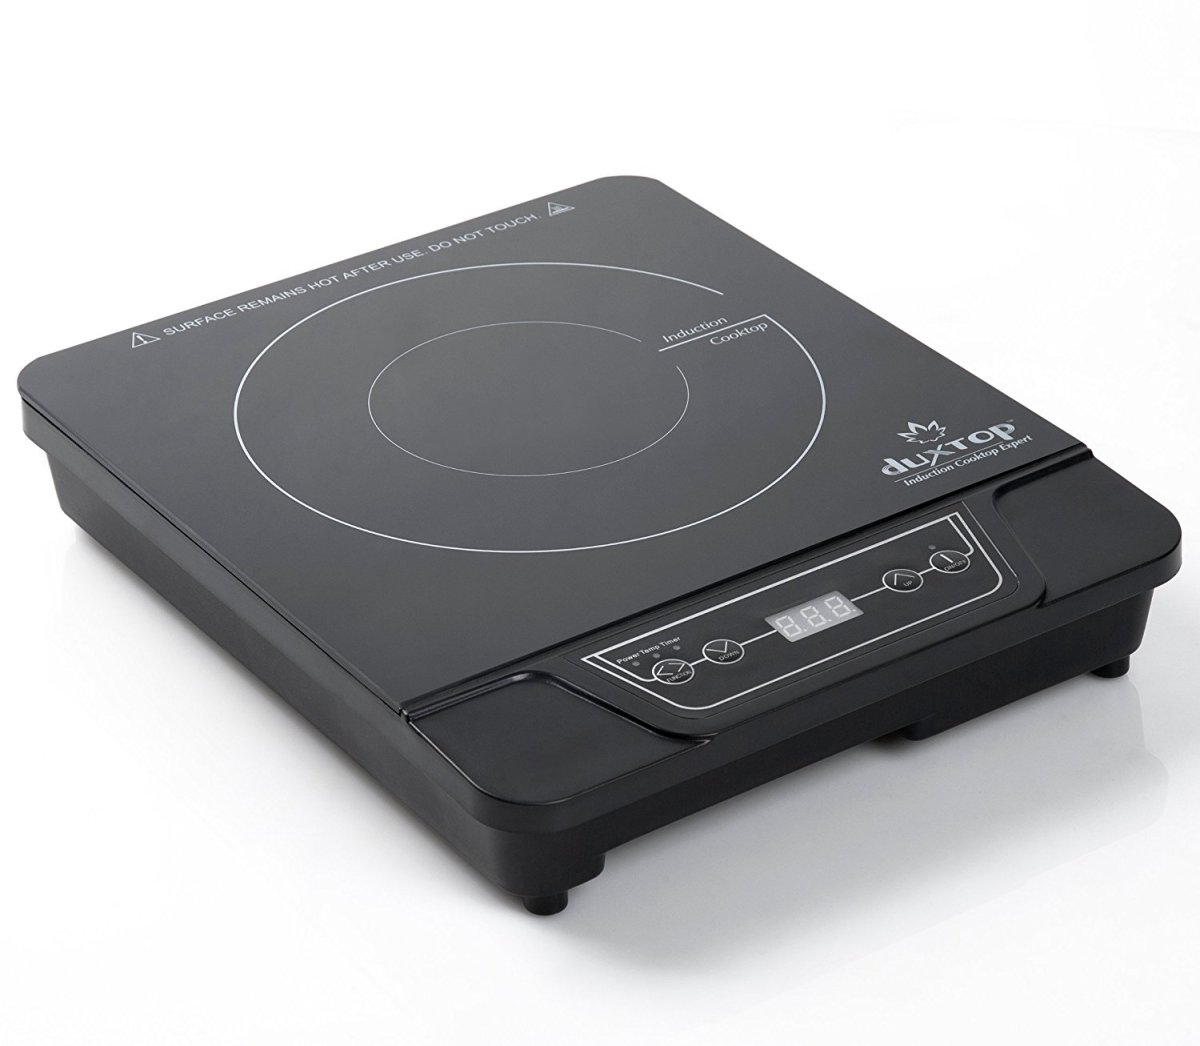 DUXTOP 7100MC Induction Cooktop Countertop Burner – Review